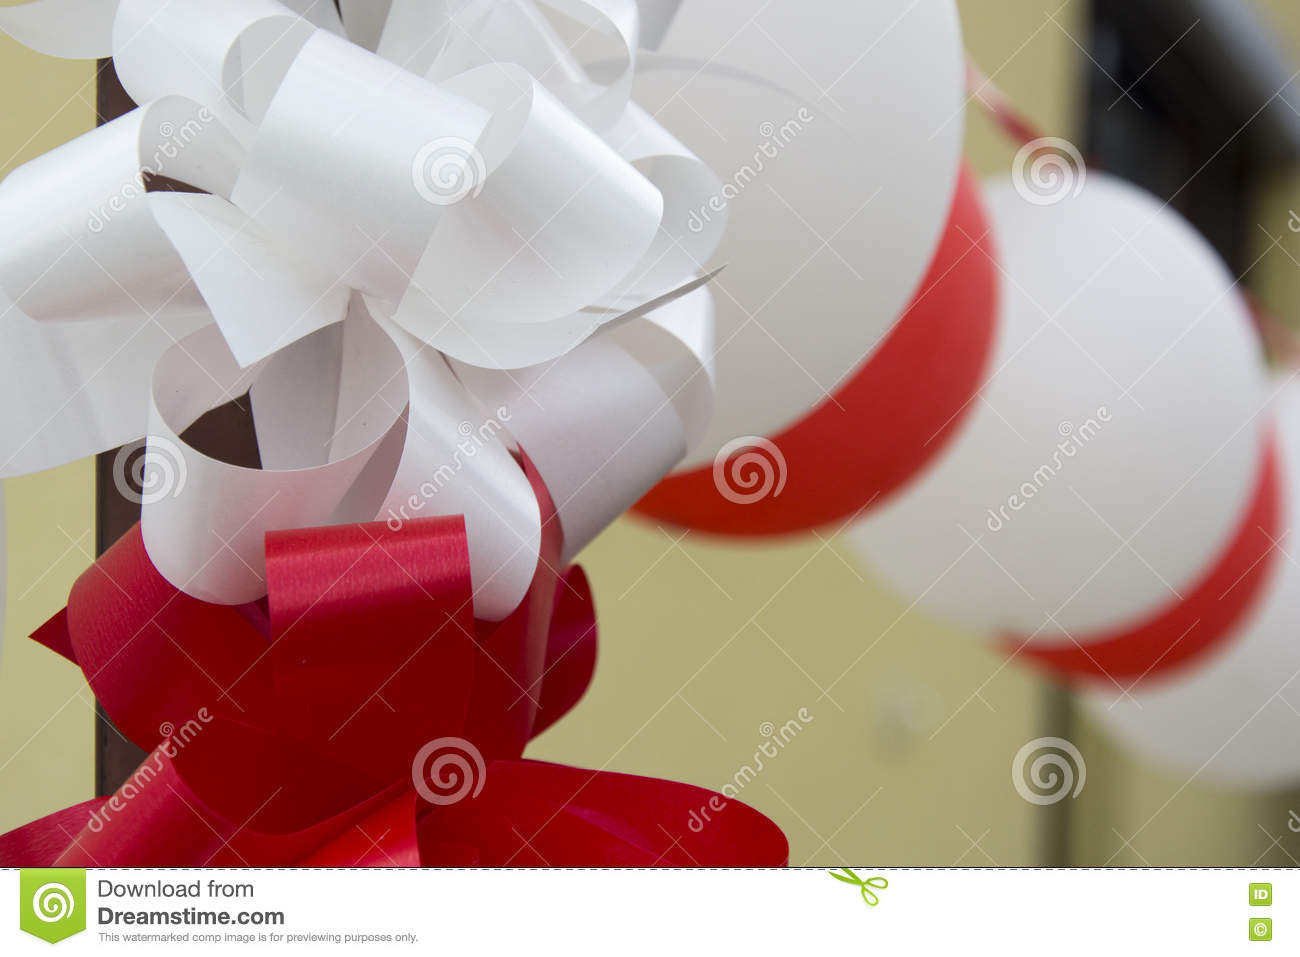 Decorative Balloons And Ribbons For Wedding Stock Photo - Image of